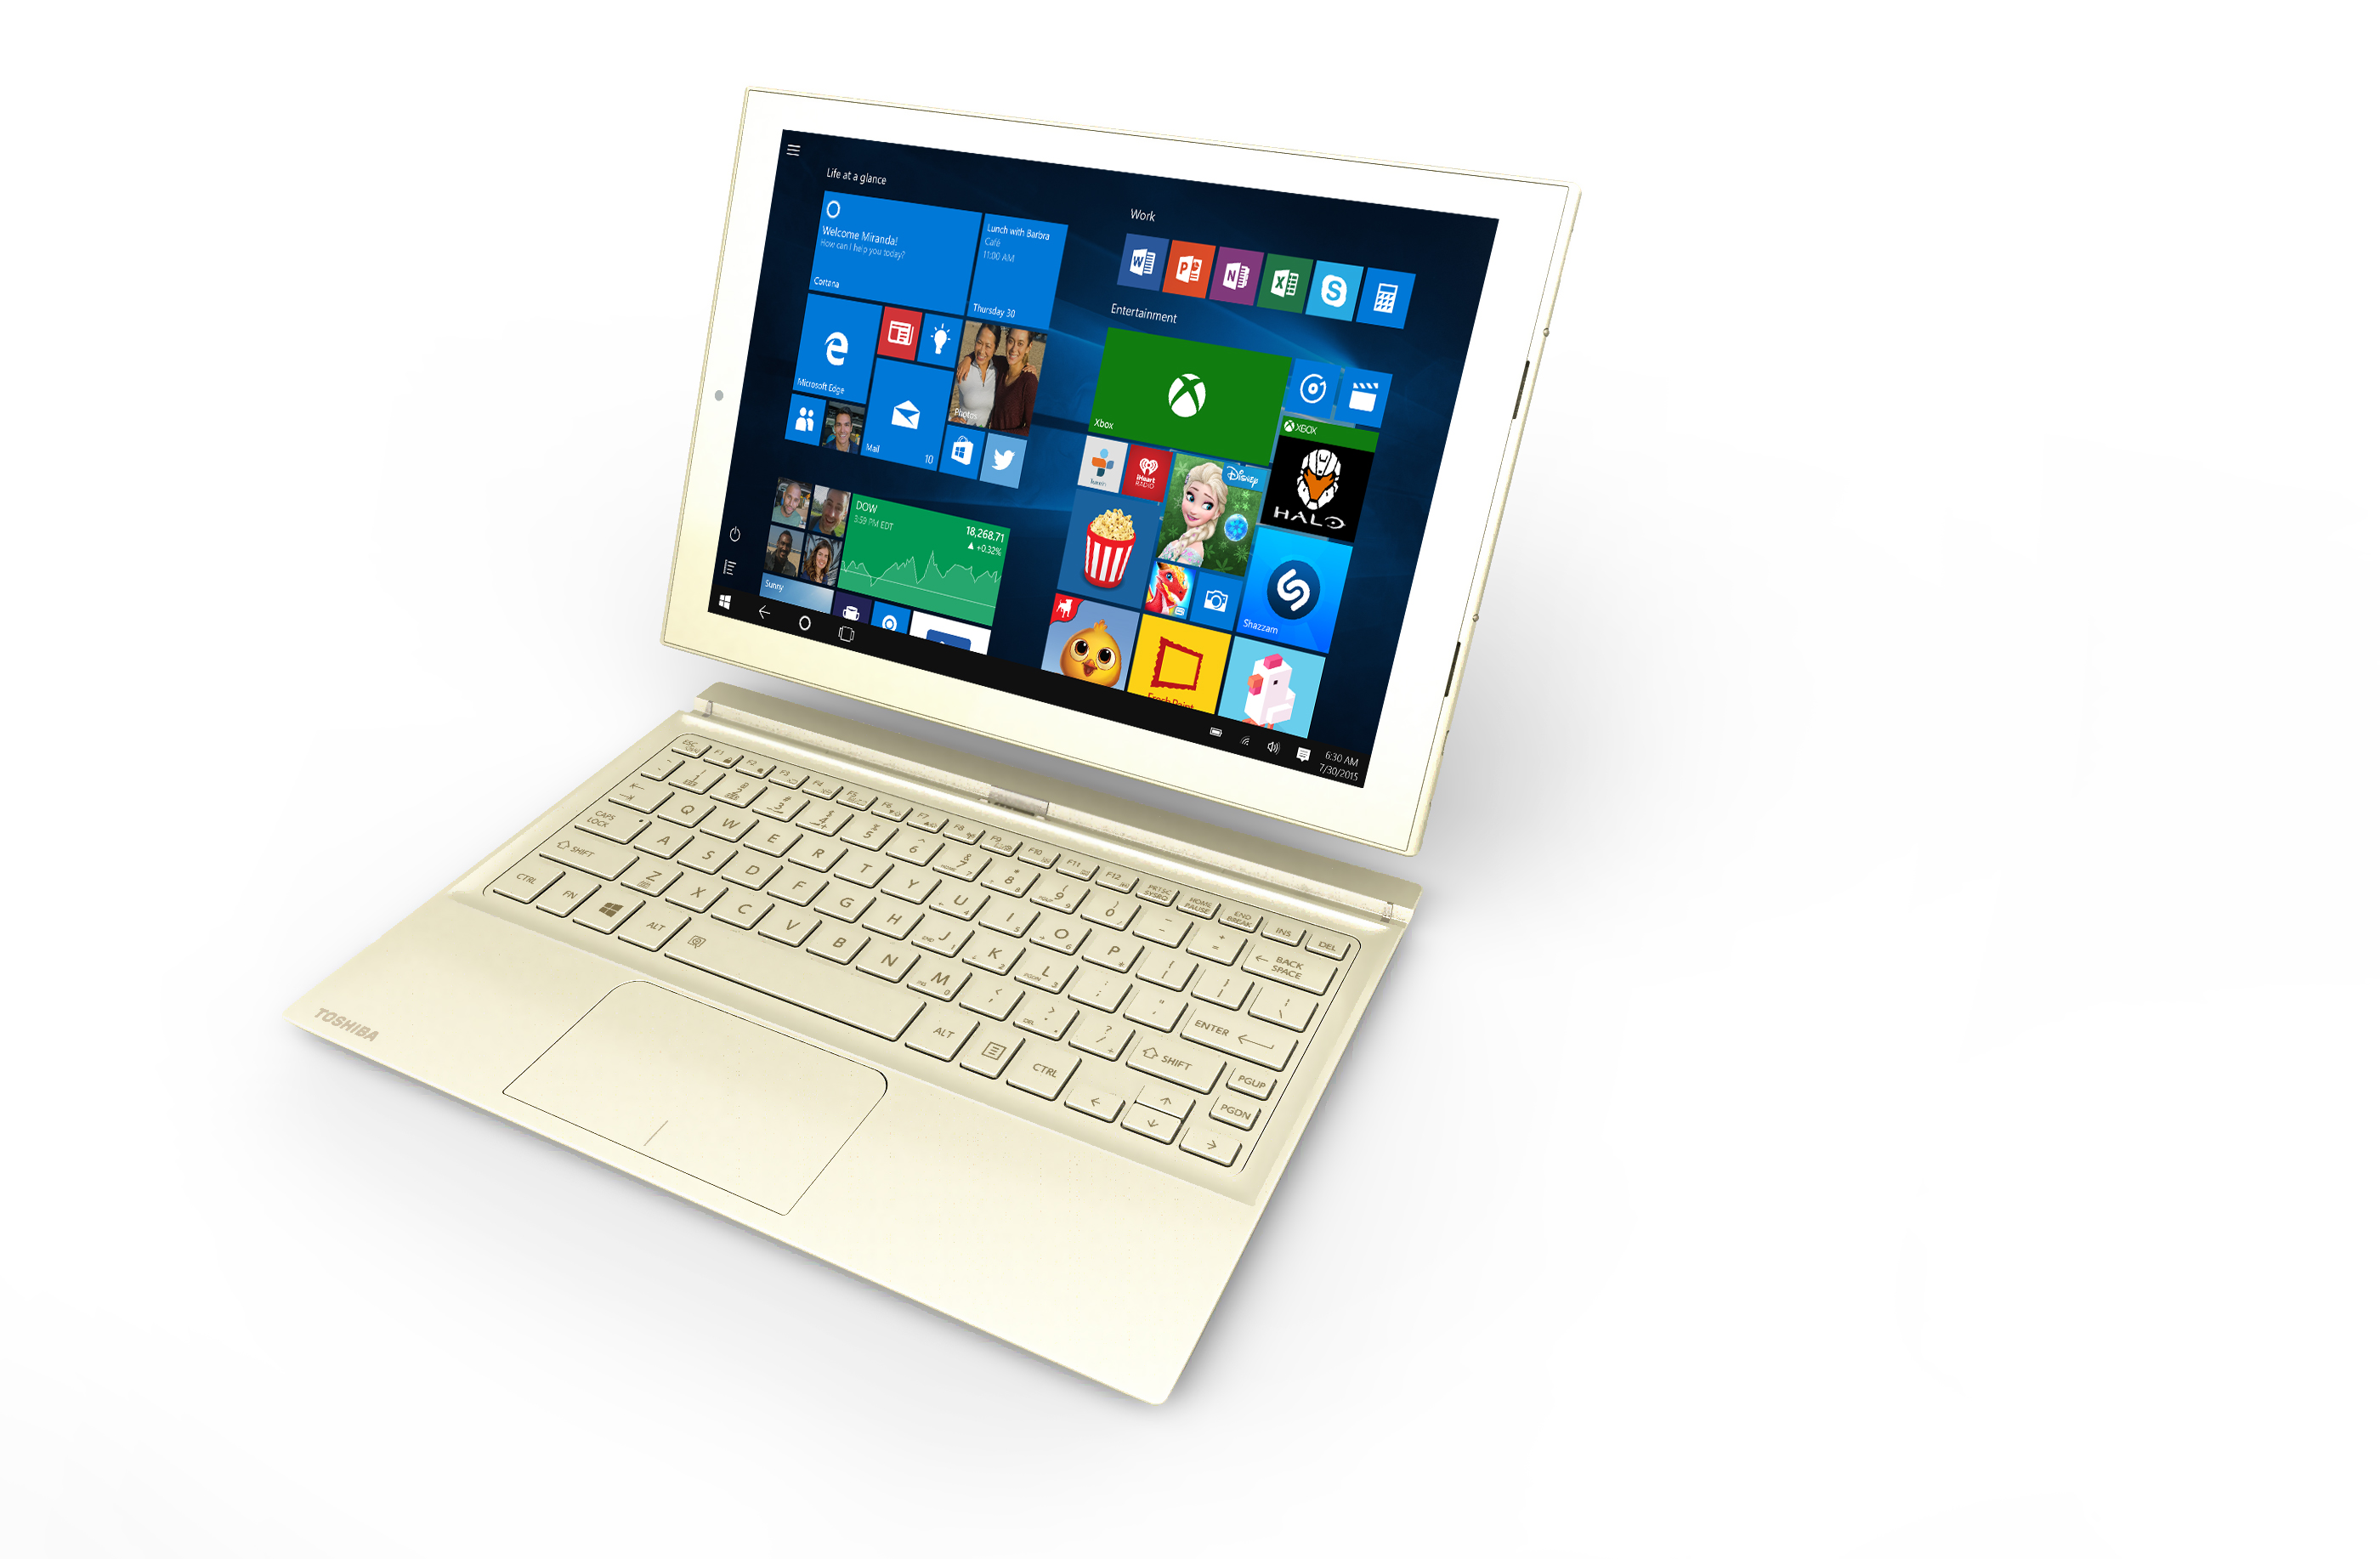 Toshiba premieres the DynaPad 2-in-1 detachable as an answer to the Surface